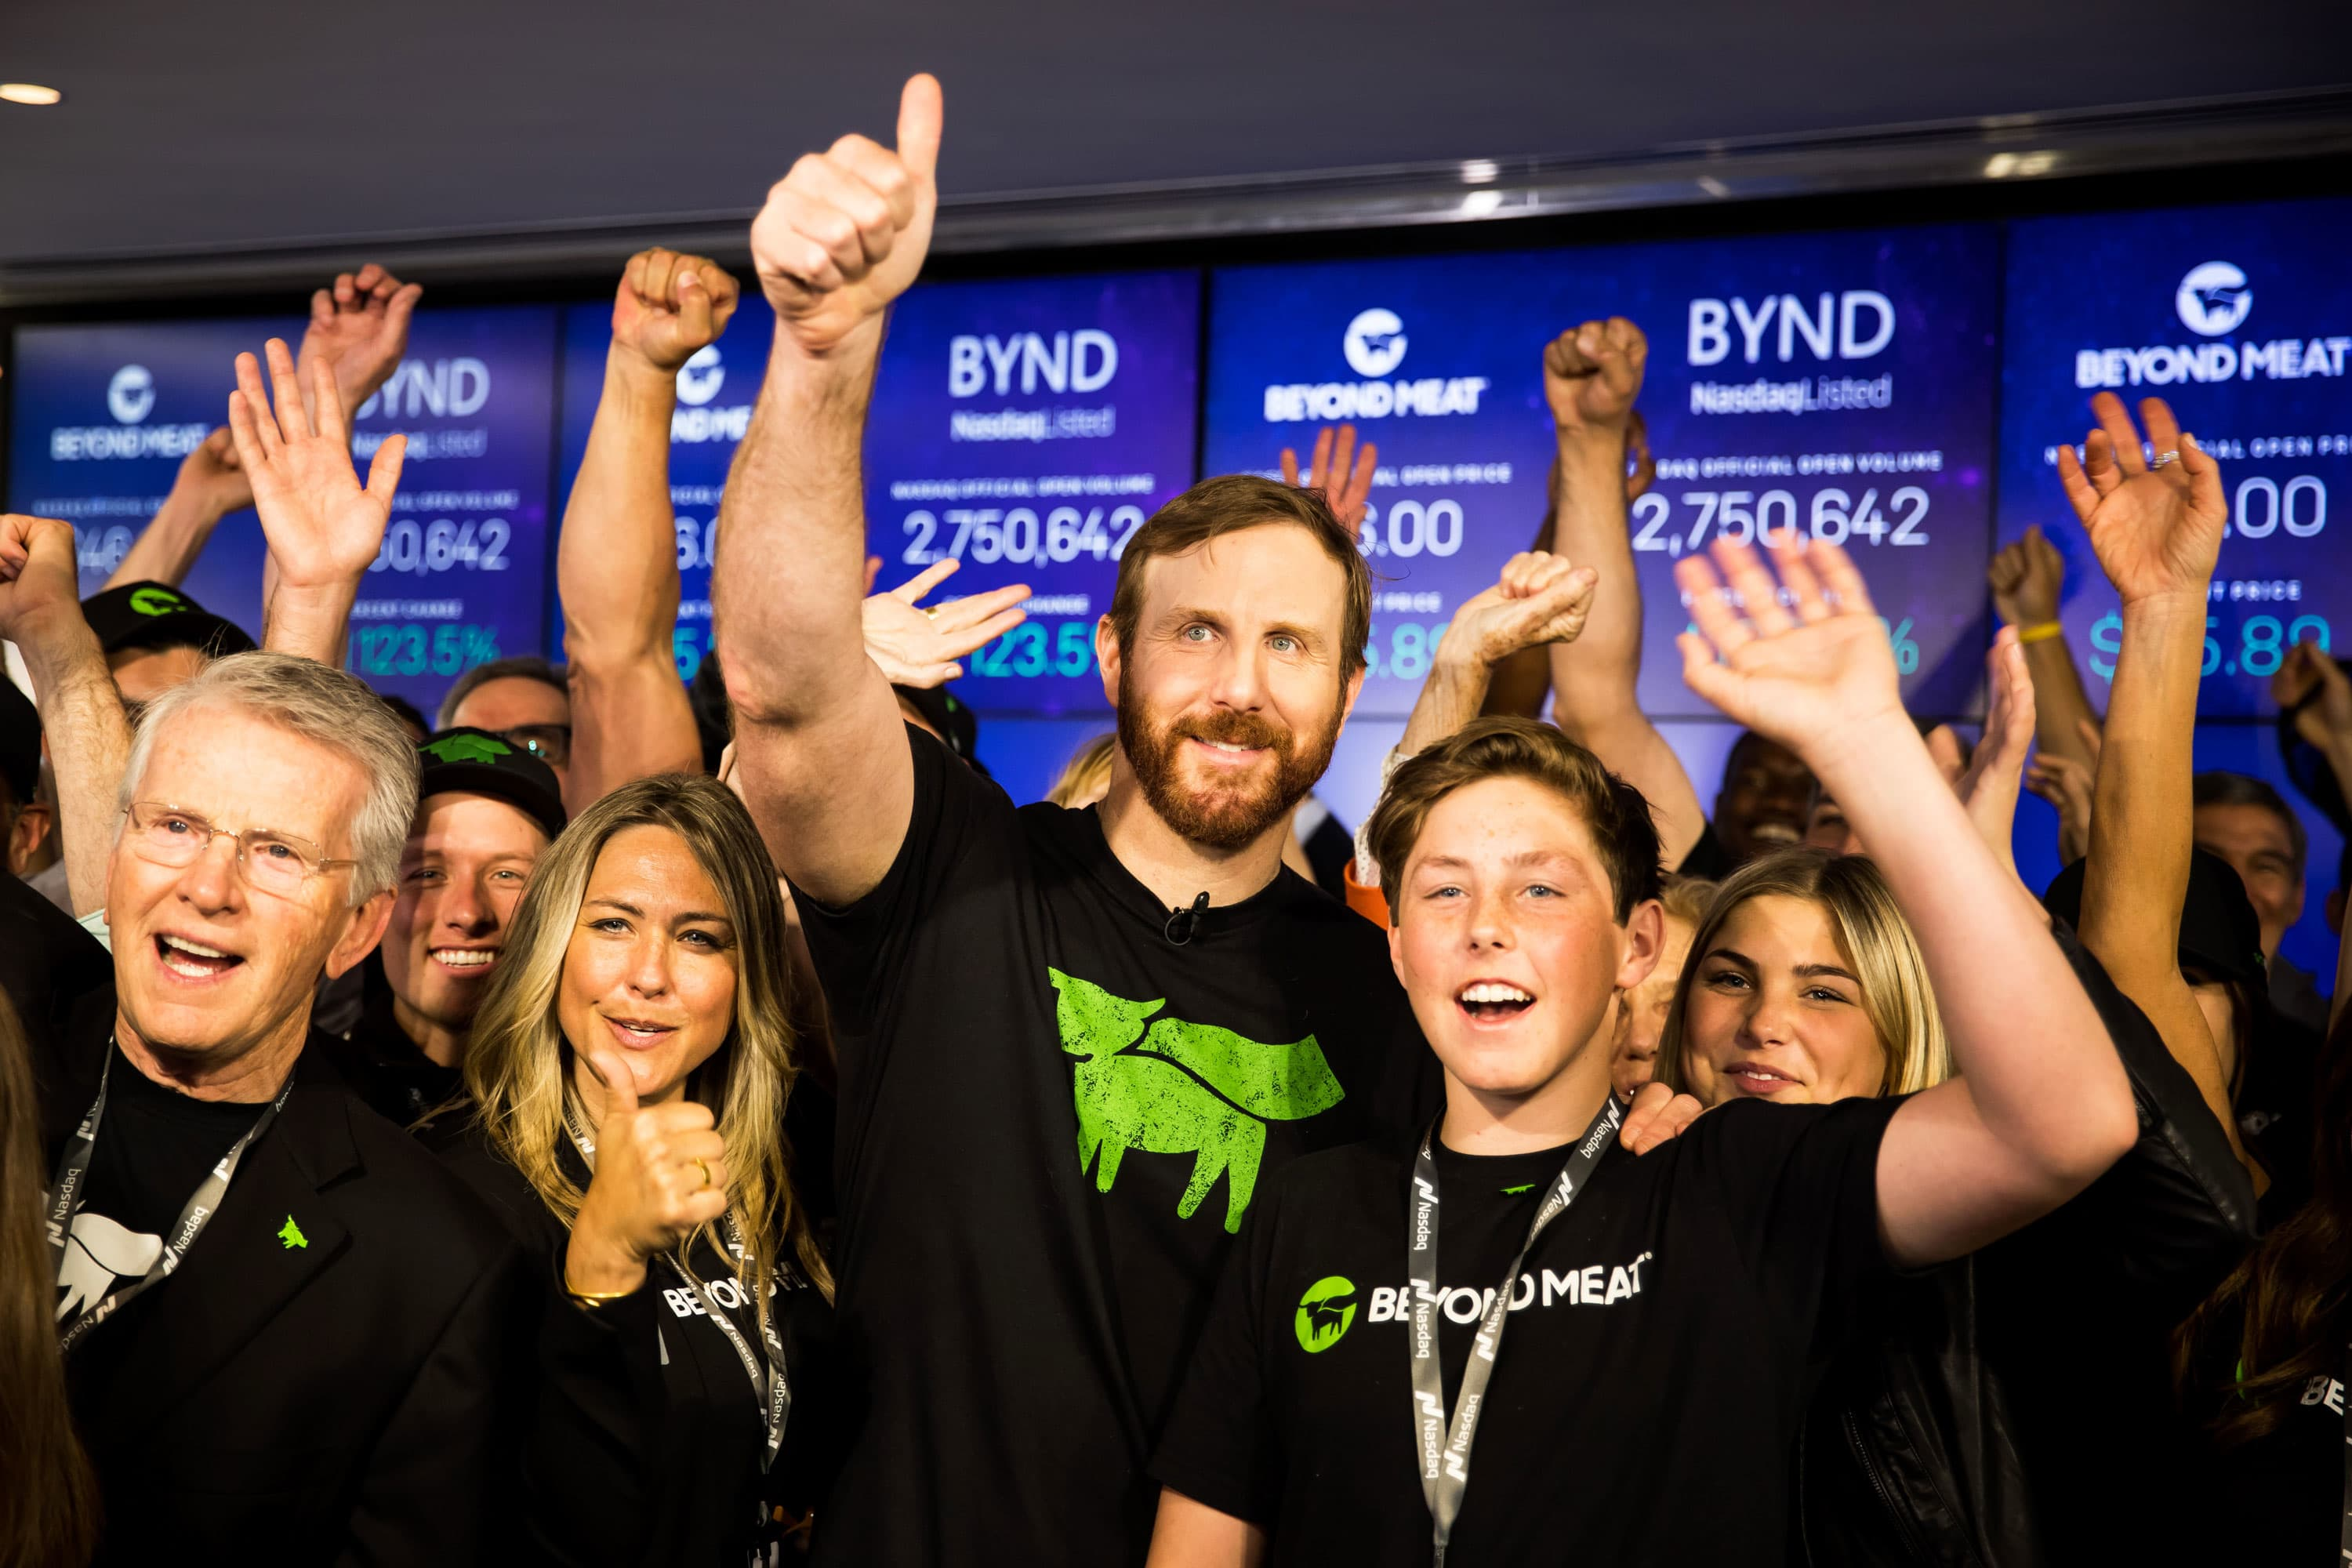 Ethan Brown, founder and chief executive officer of Beyond Meat Inc., center, celebrates with his wife Tracy Brown, center left, and guests during the company's initial public offering (IPO) at the Nasdaq MarketSite in New York, U.S., on Thursday, May 2, 2019.